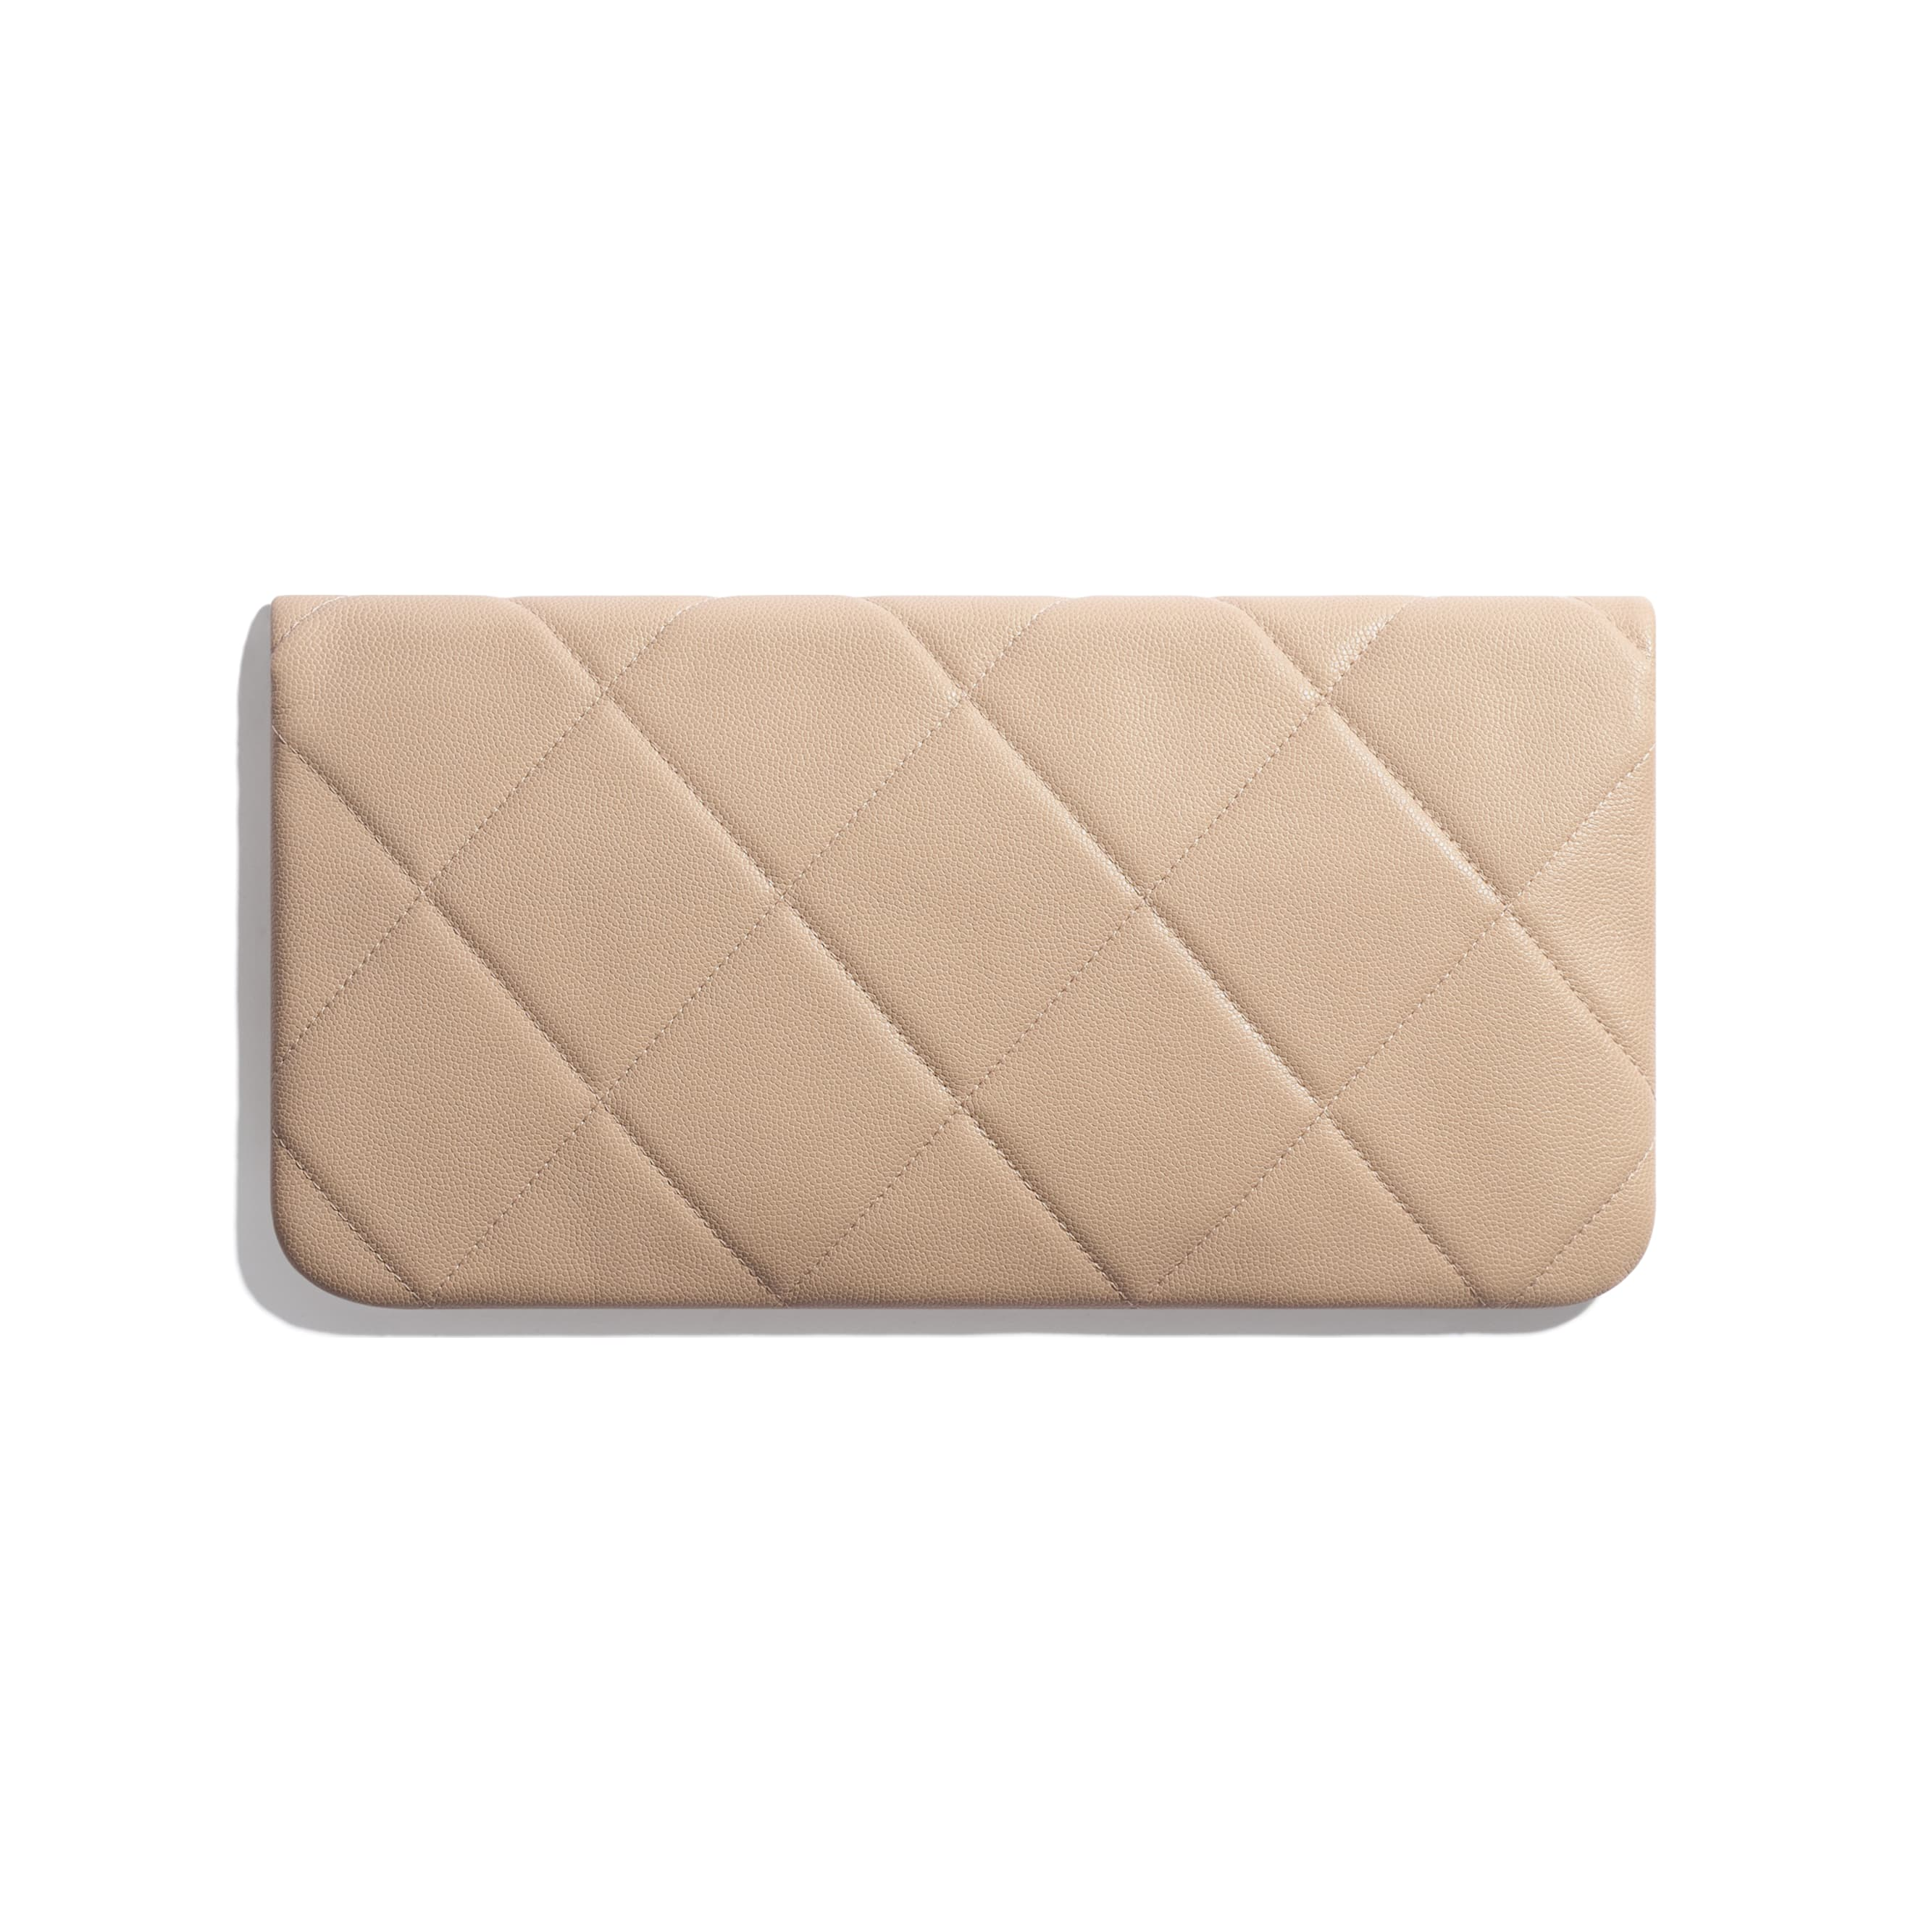 Clutch - Beige - Grained Calfskin & Gold-Tone Metal - Alternative view - see standard sized version